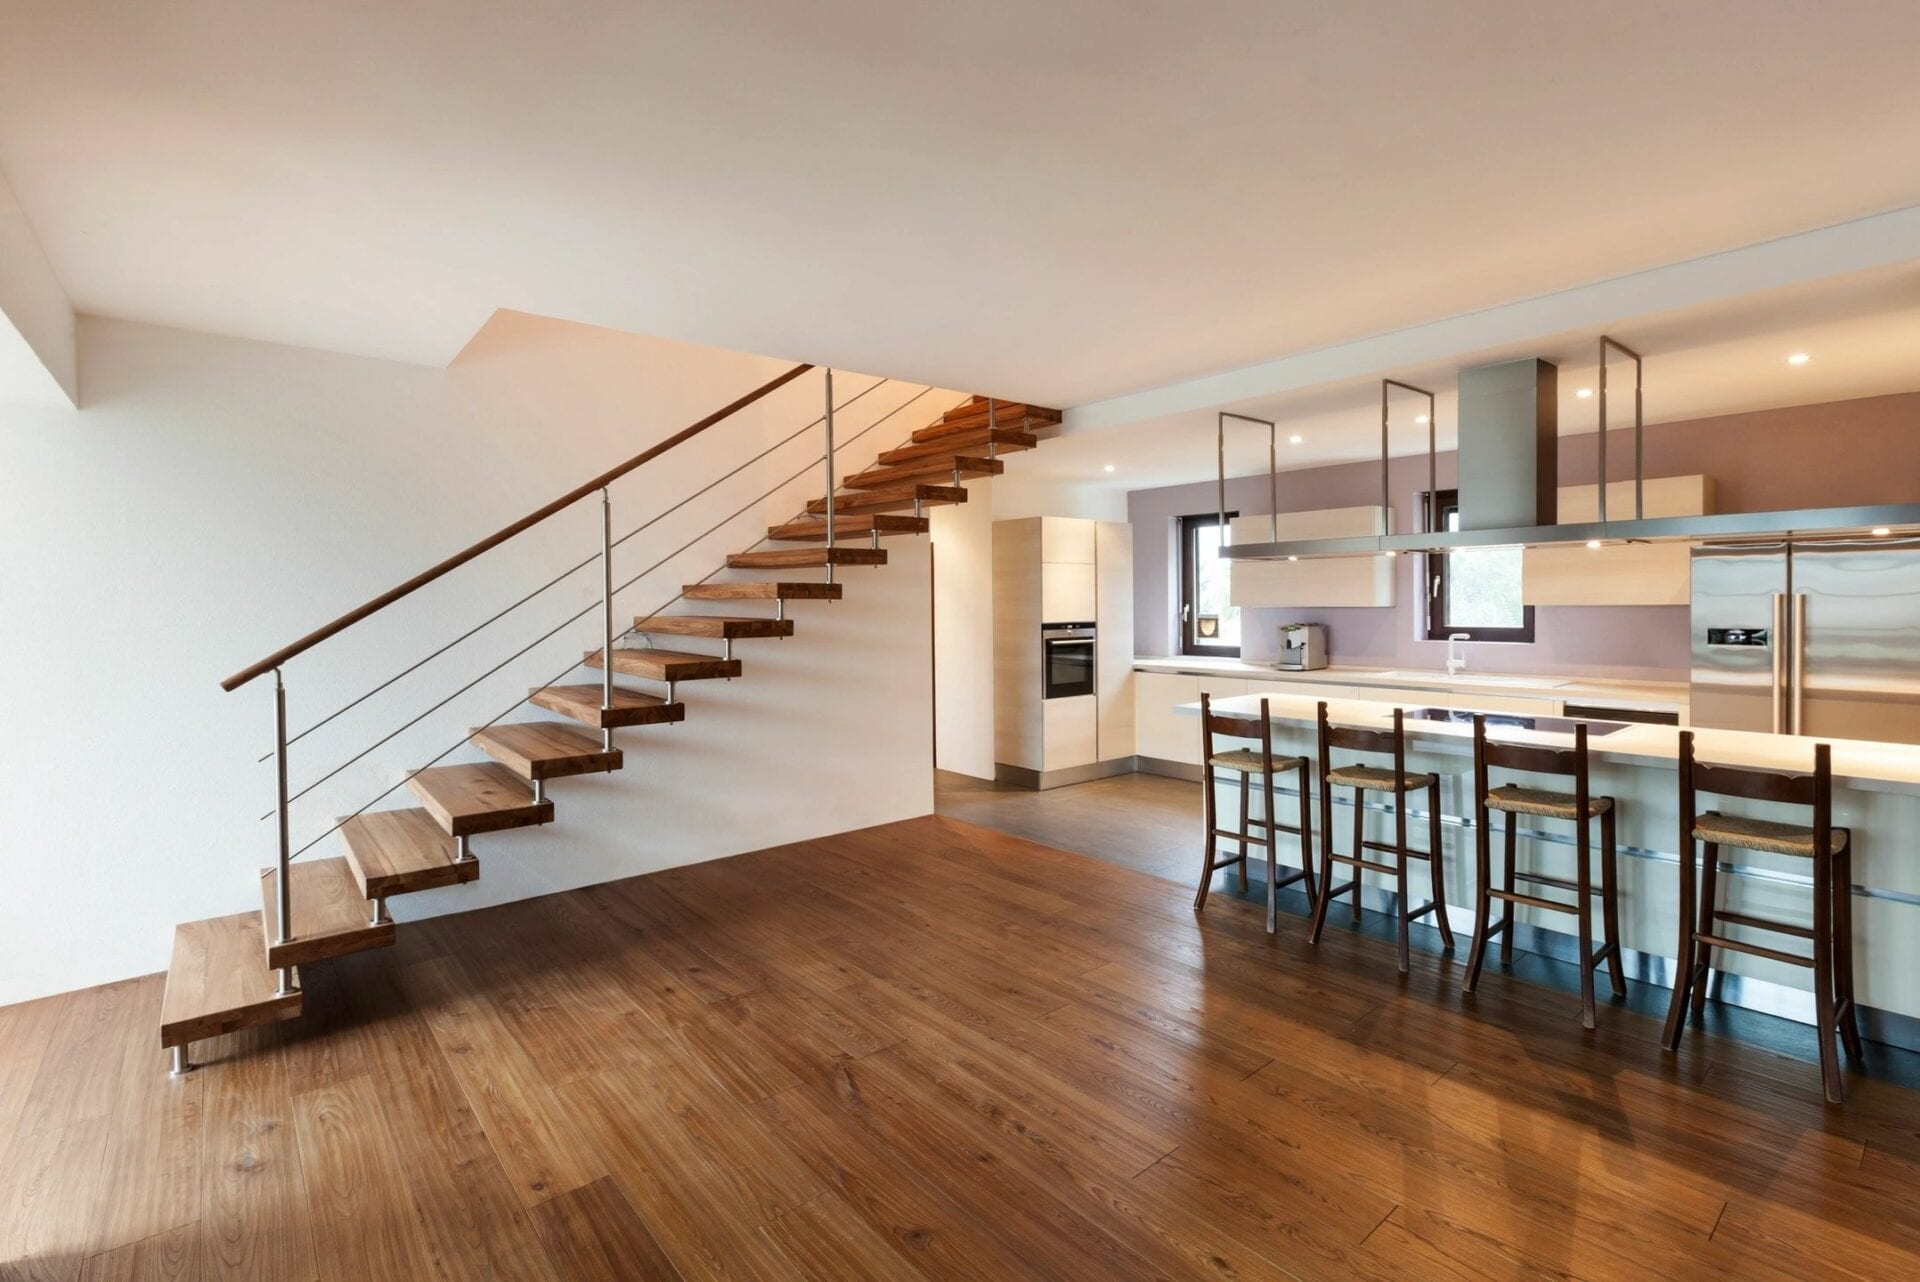 Floor and stairs with hardwood covering